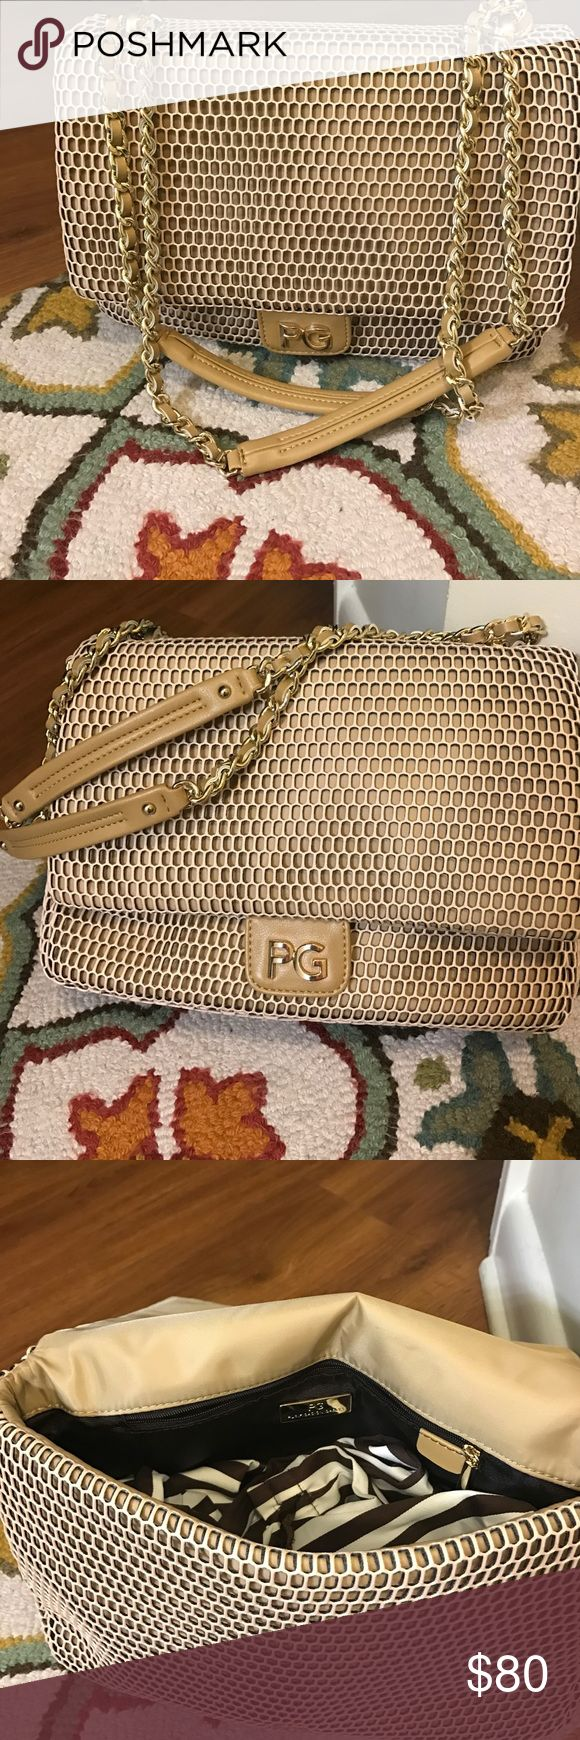 Purificación García Gold Shoulder Bag! NWT! Purificación García NWT shoulder bag with gorgeous knit outside. Strap can be worn Crossbody or over the shoulder. One inside zip pocket. Approx. 8in tall x 12in. Wide x 4in. At its widest. Bags Shoulder Bags